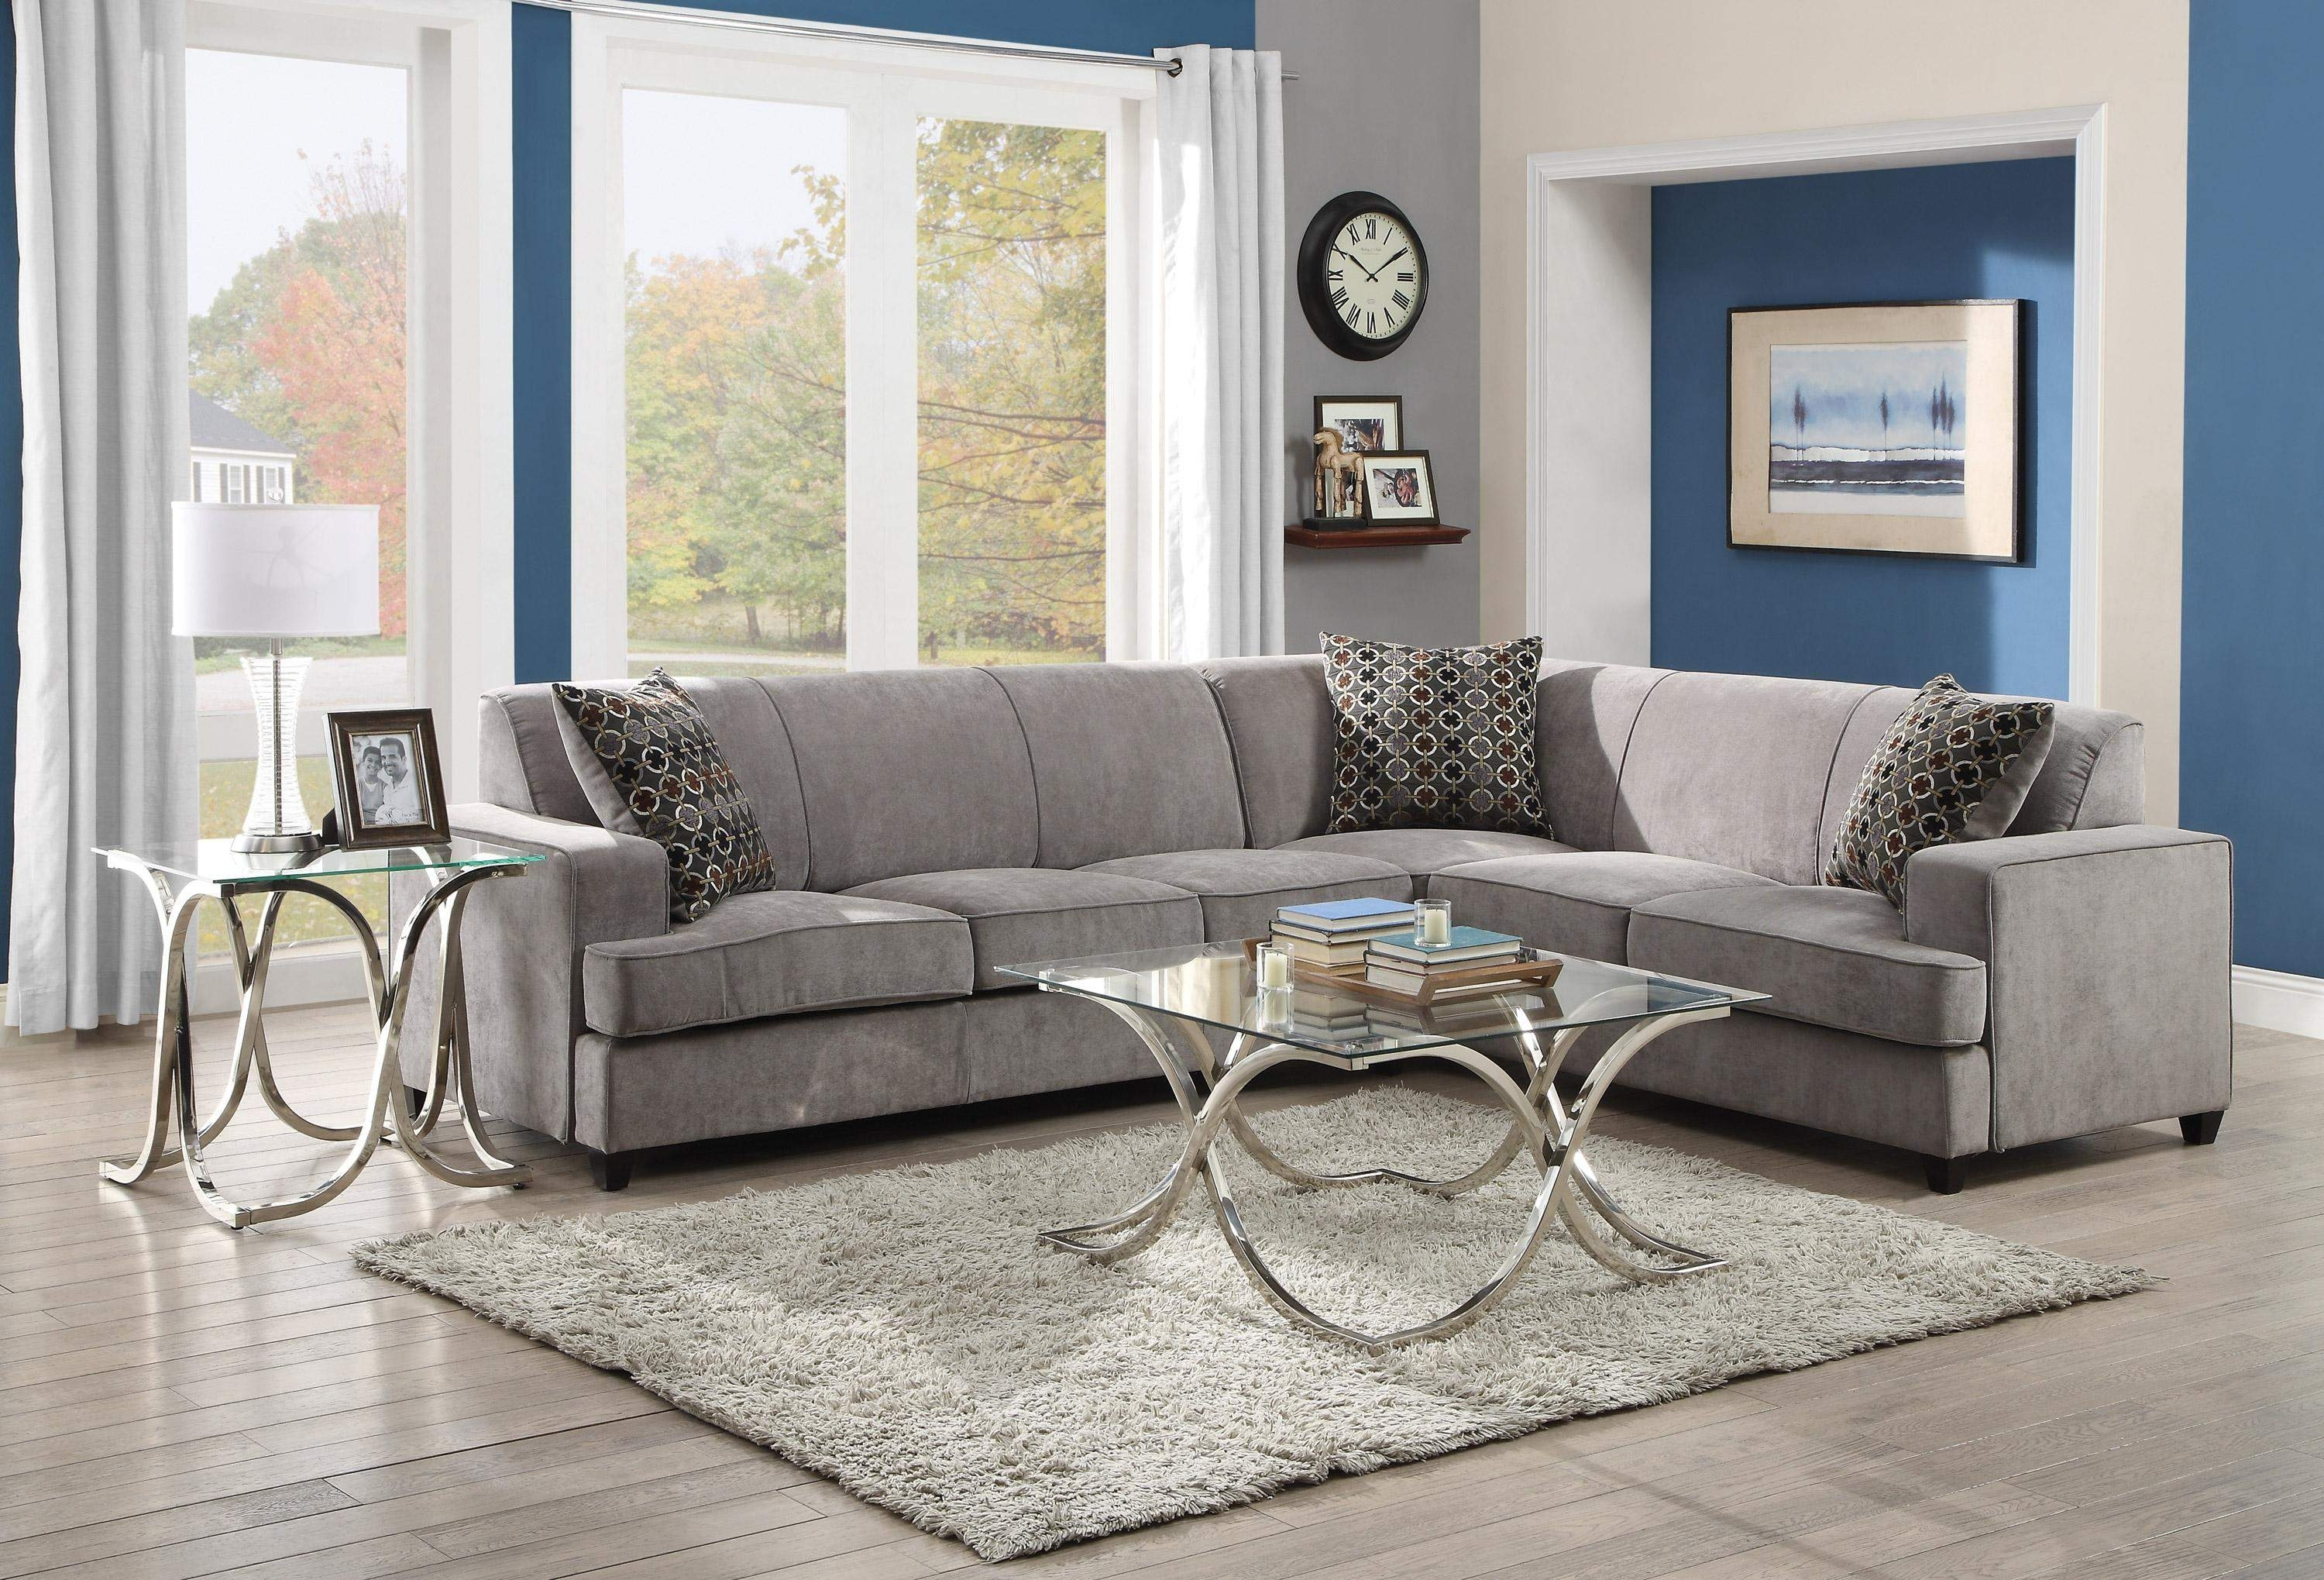 Tess Casual Grey Fabric Sectional Sofa For Corners With Queen Size For Philadelphia Sectional Sofas (Image 9 of 10)